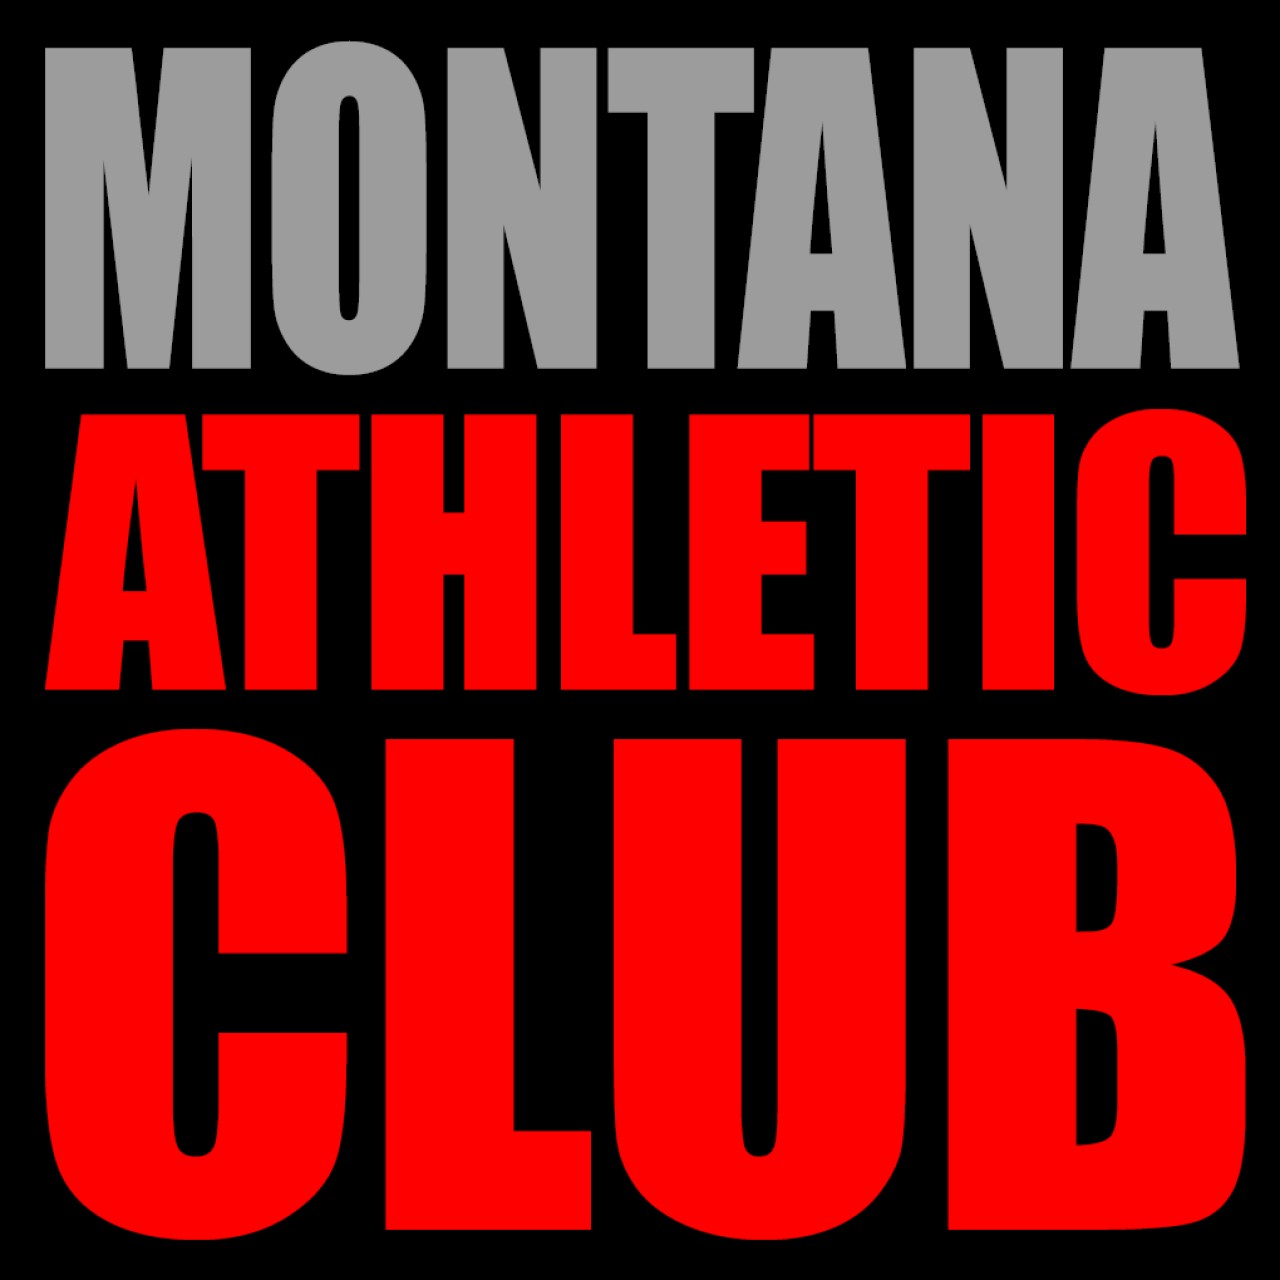 The Montana Athletic Club